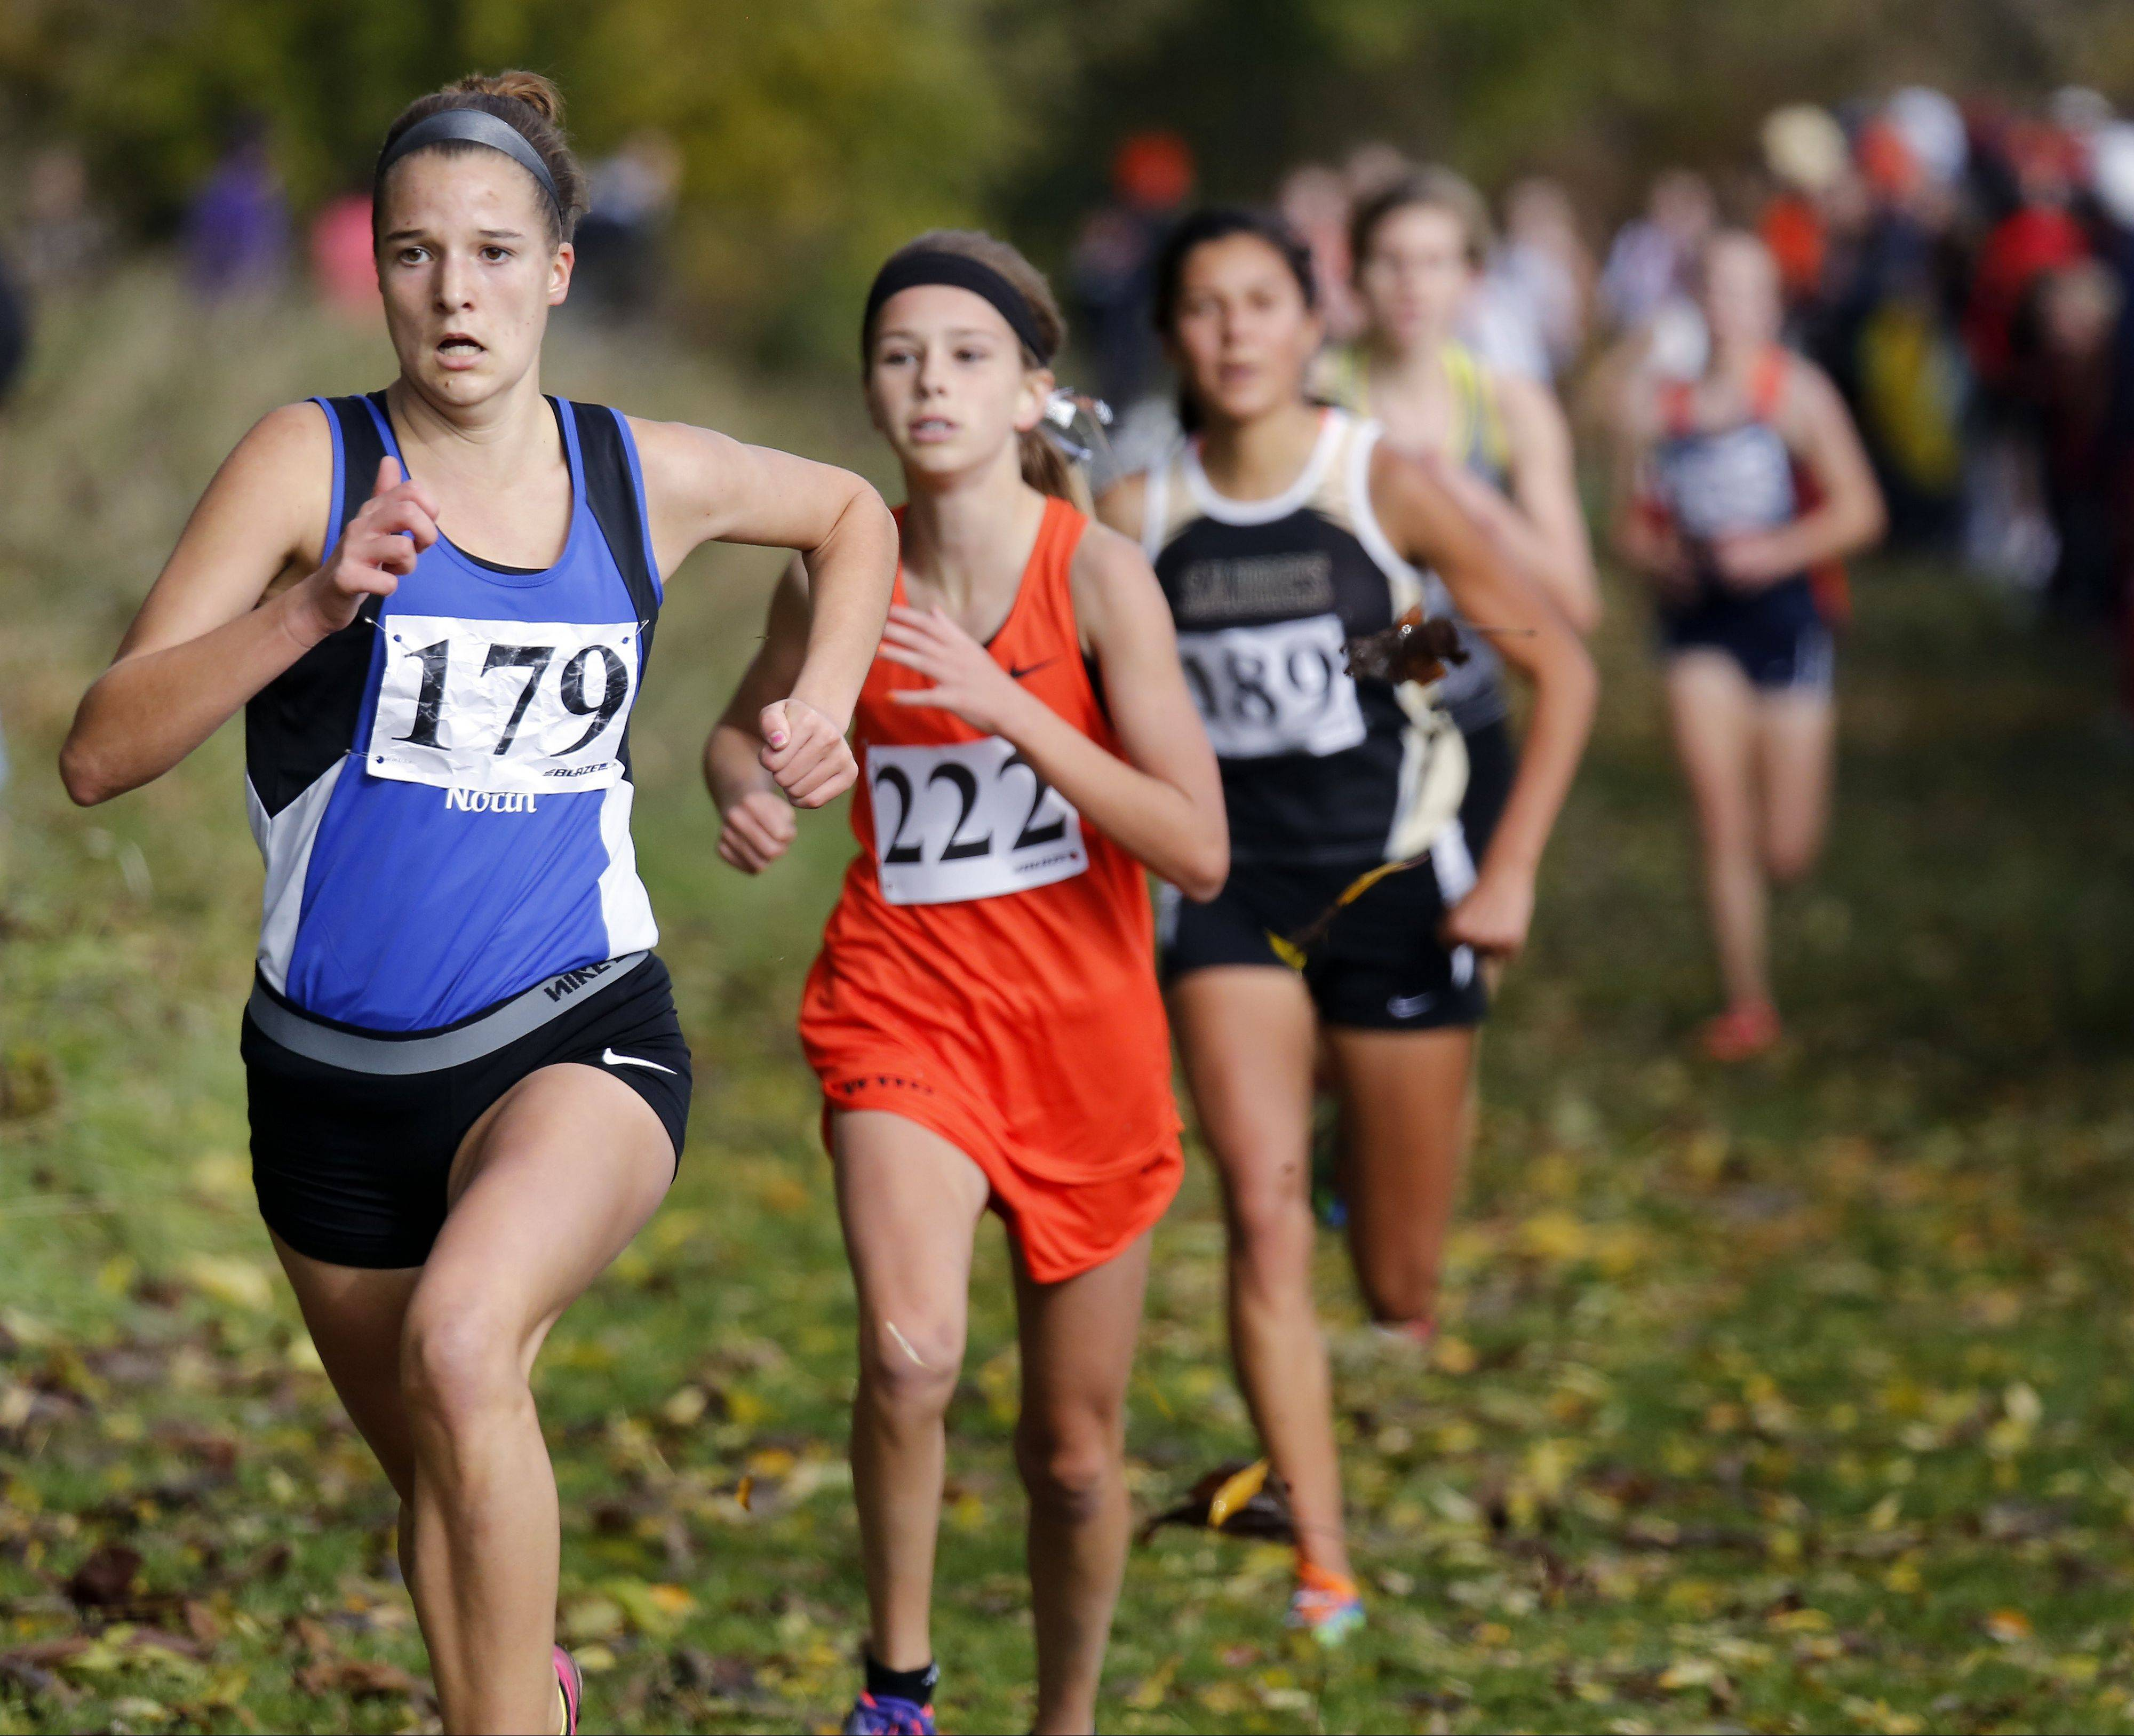 Ashley England of St. Charles North heads to fourth place during the Waubonsie Valley girls cross country Sectional in Aurora.